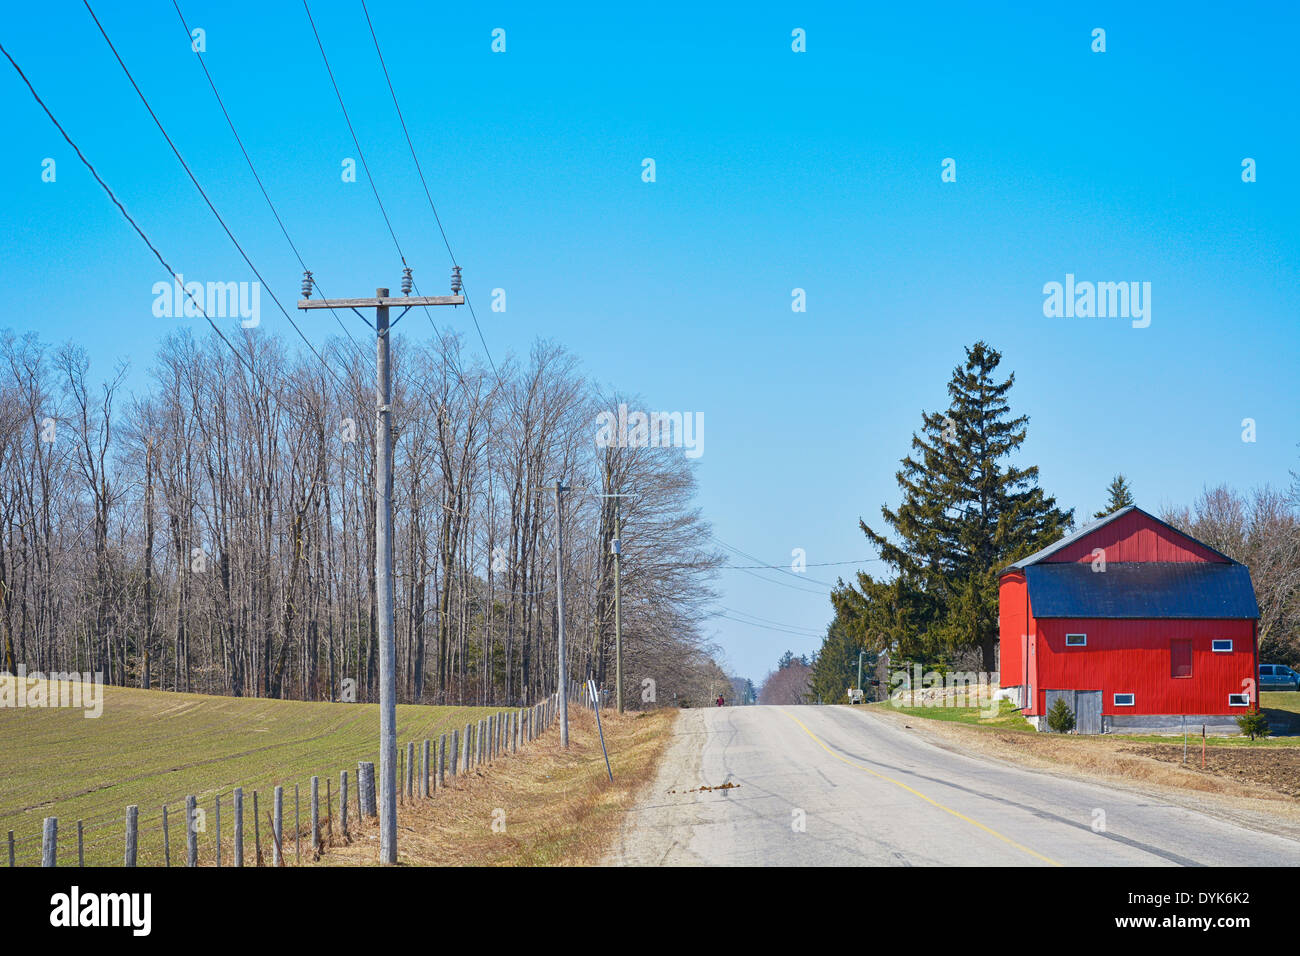 Red Barn House on Country road, St. Jacobs Village, Ontario - Stock Image